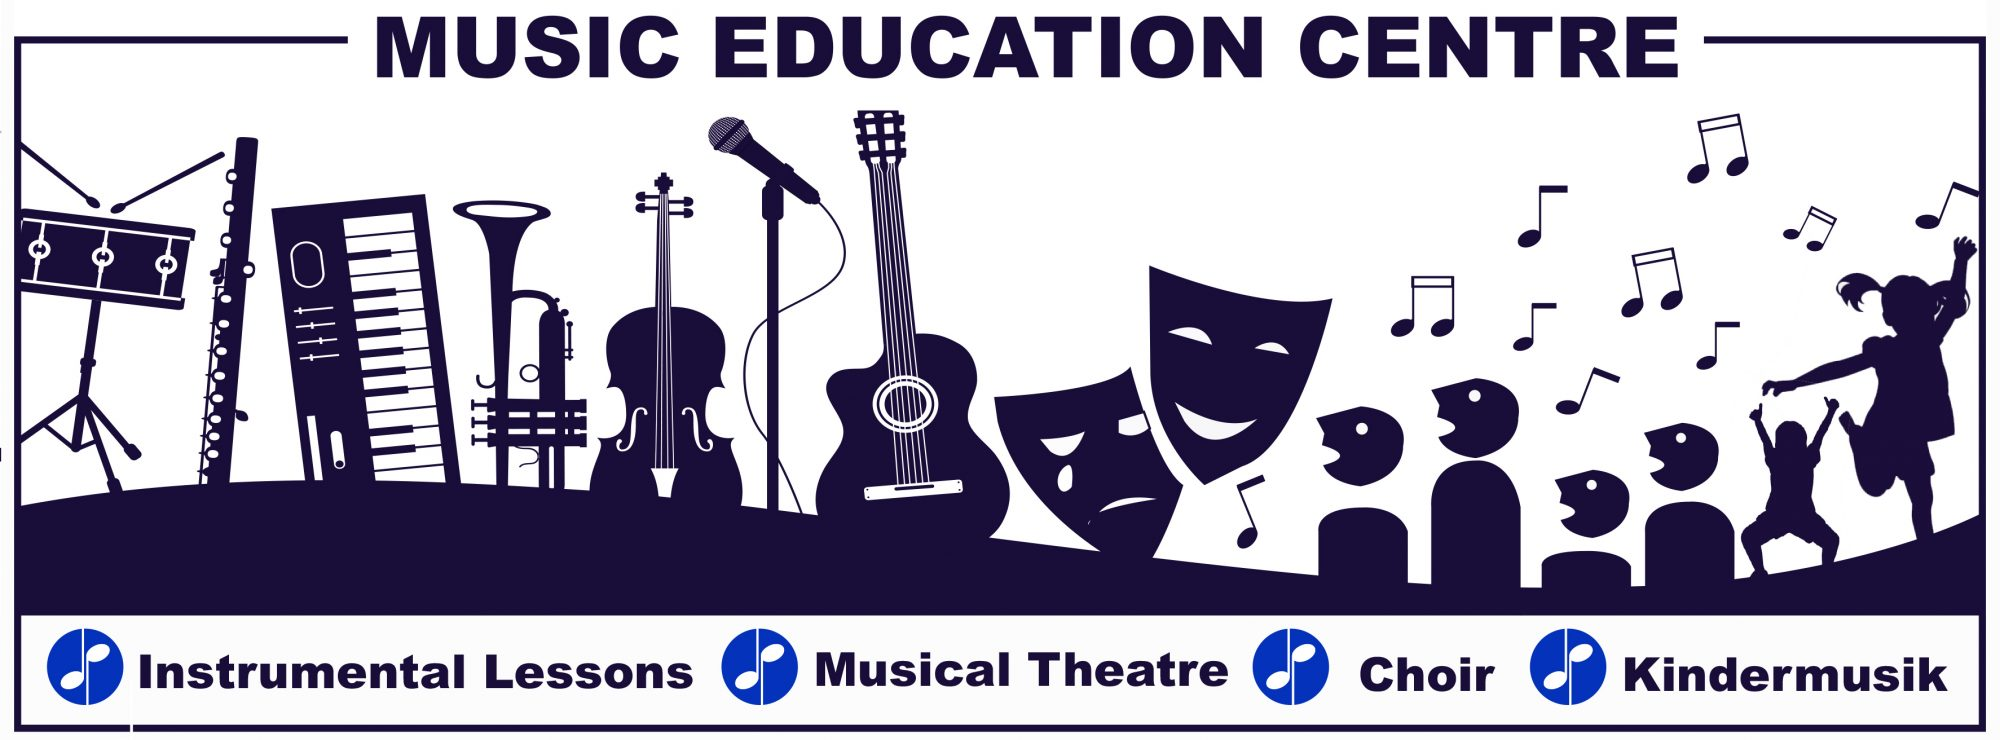 Welcome to the Music Education Centre